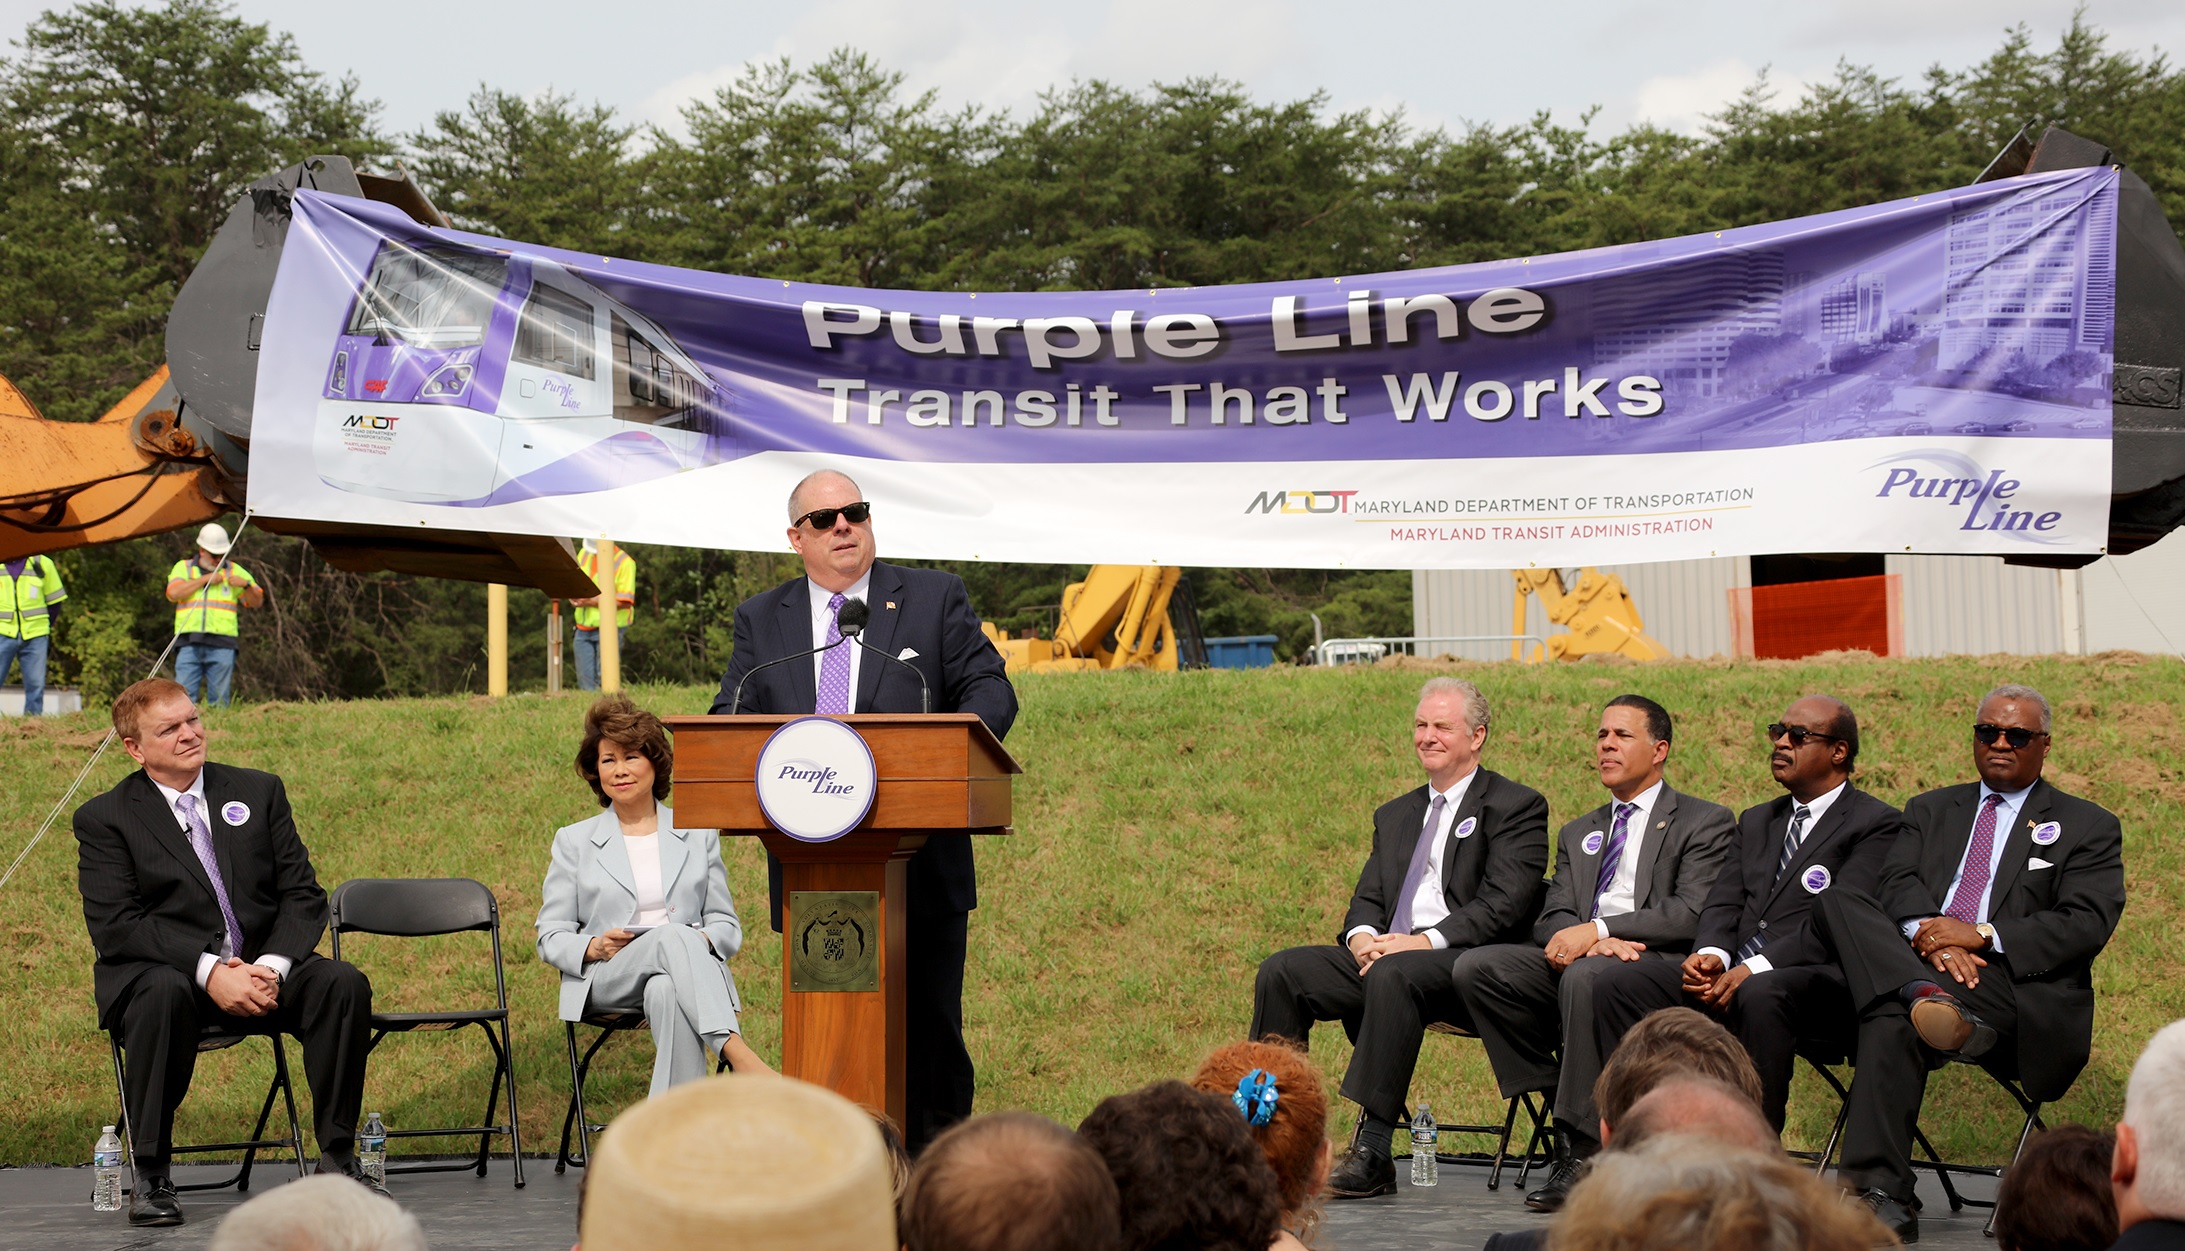 Democrats laud Hogan as they celebrate Purple Line start